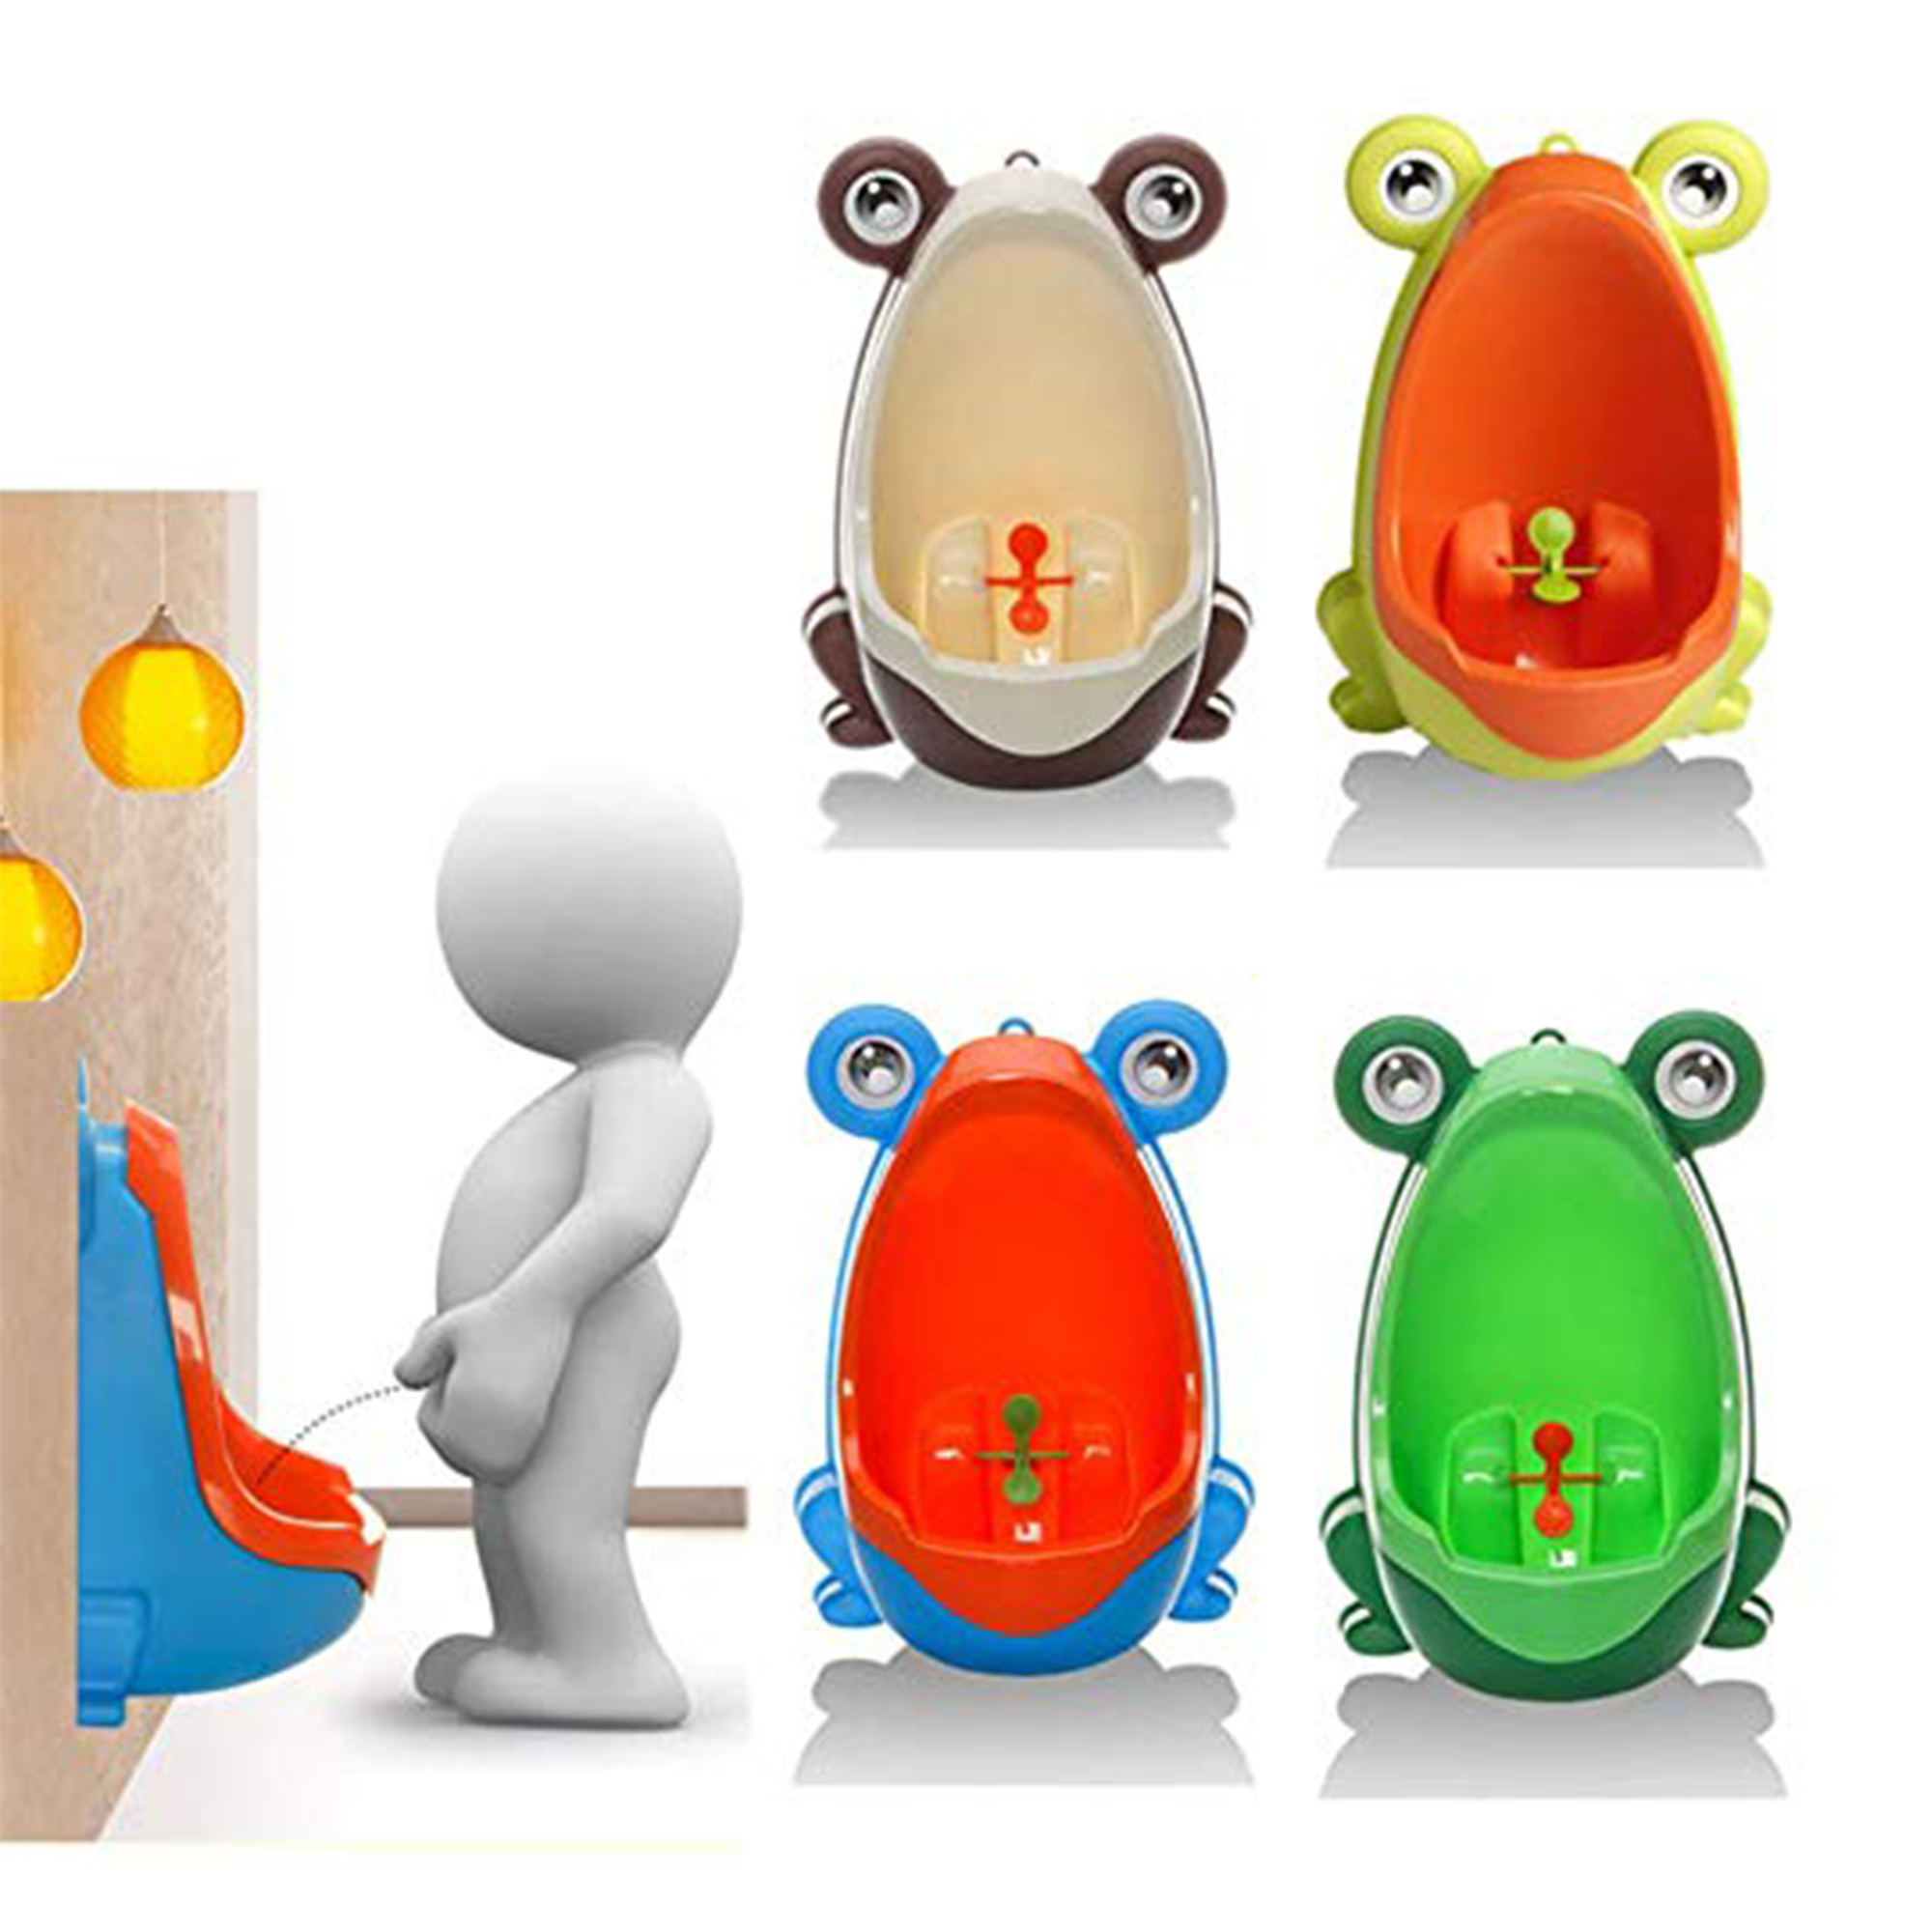 NK Lovely Frog Boy Kids Baby Toilet Training Children Potty Pee Urine Home Bathroom with Funny Aiming Target